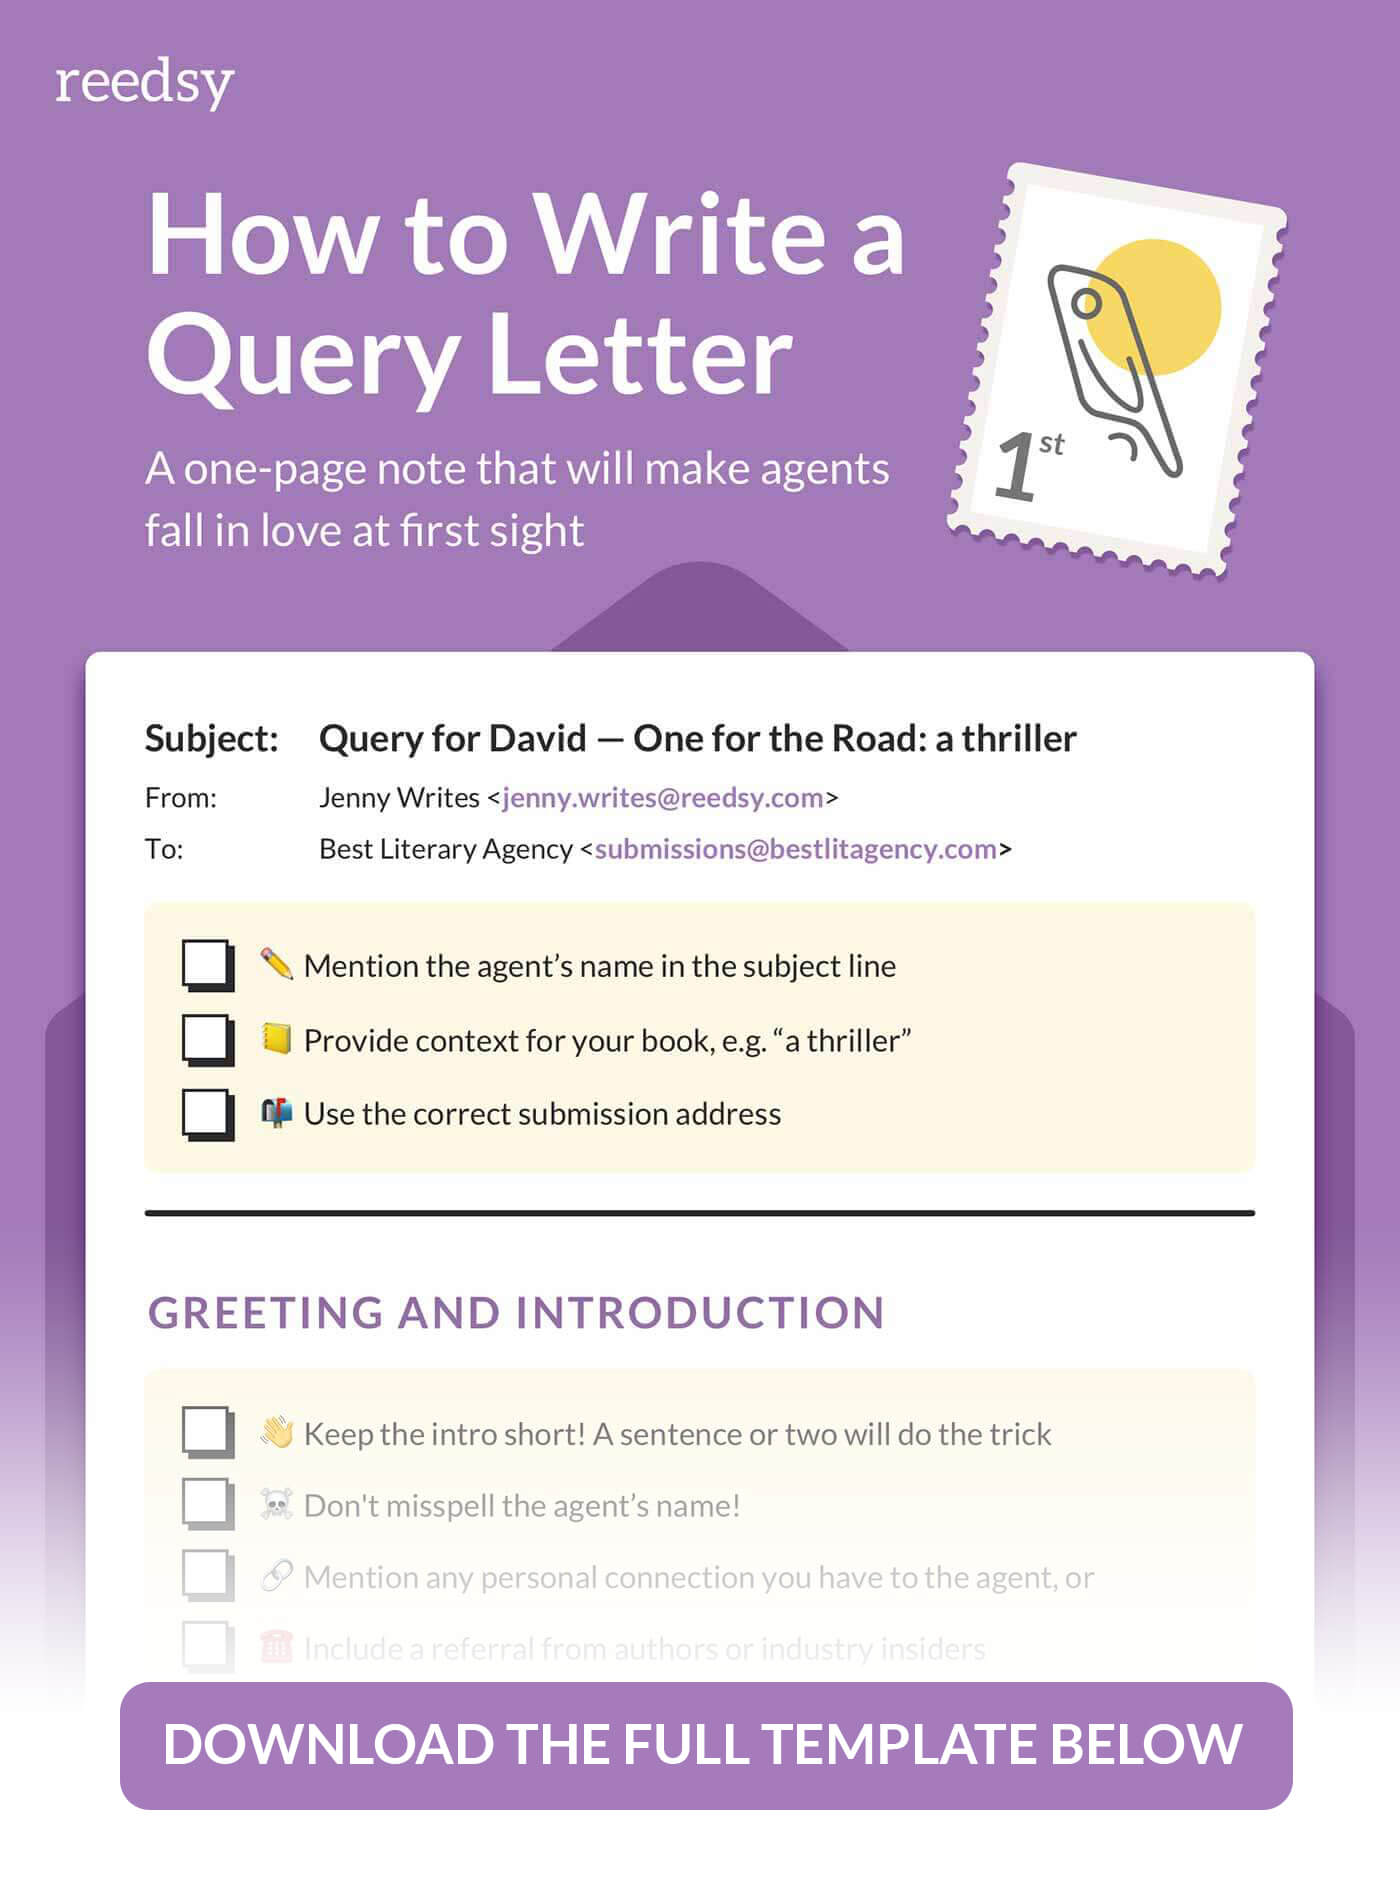 How To Write A Query Letter In 7 Steps Reedsy